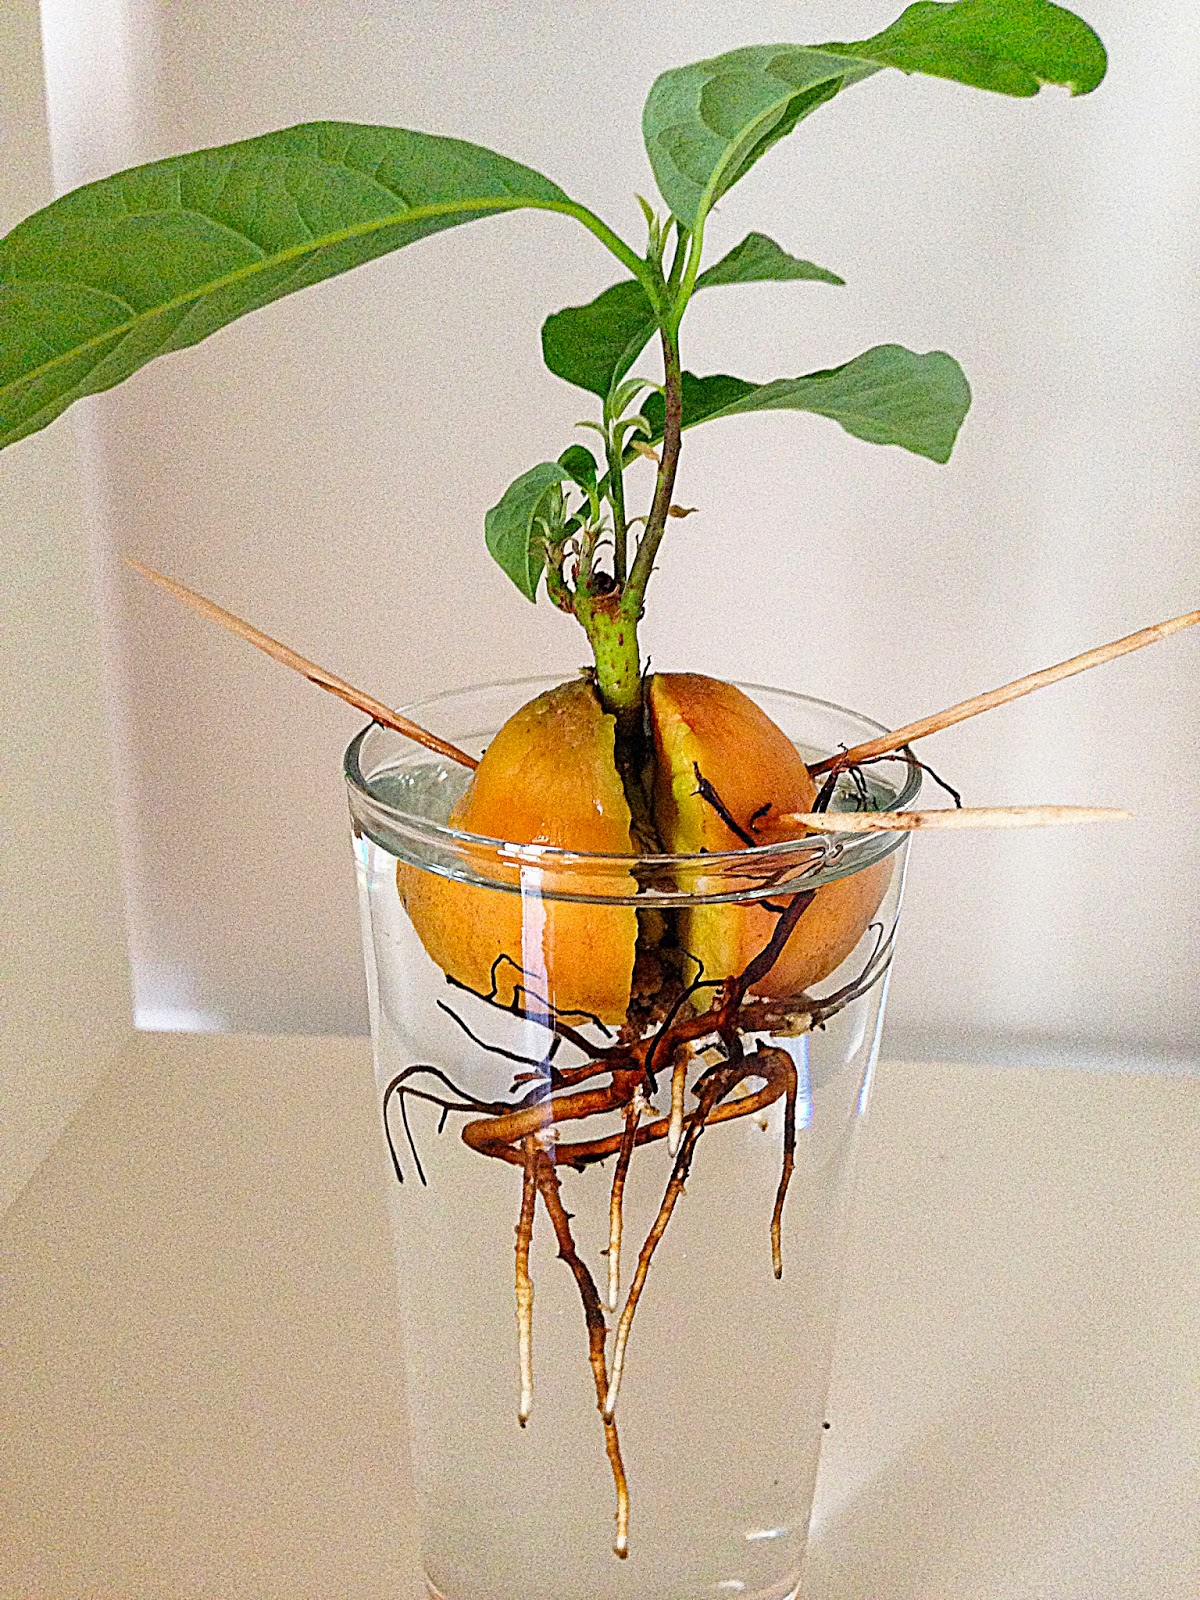 Daughter Of Pearl: How To Grow An Avocado Tree From Seed